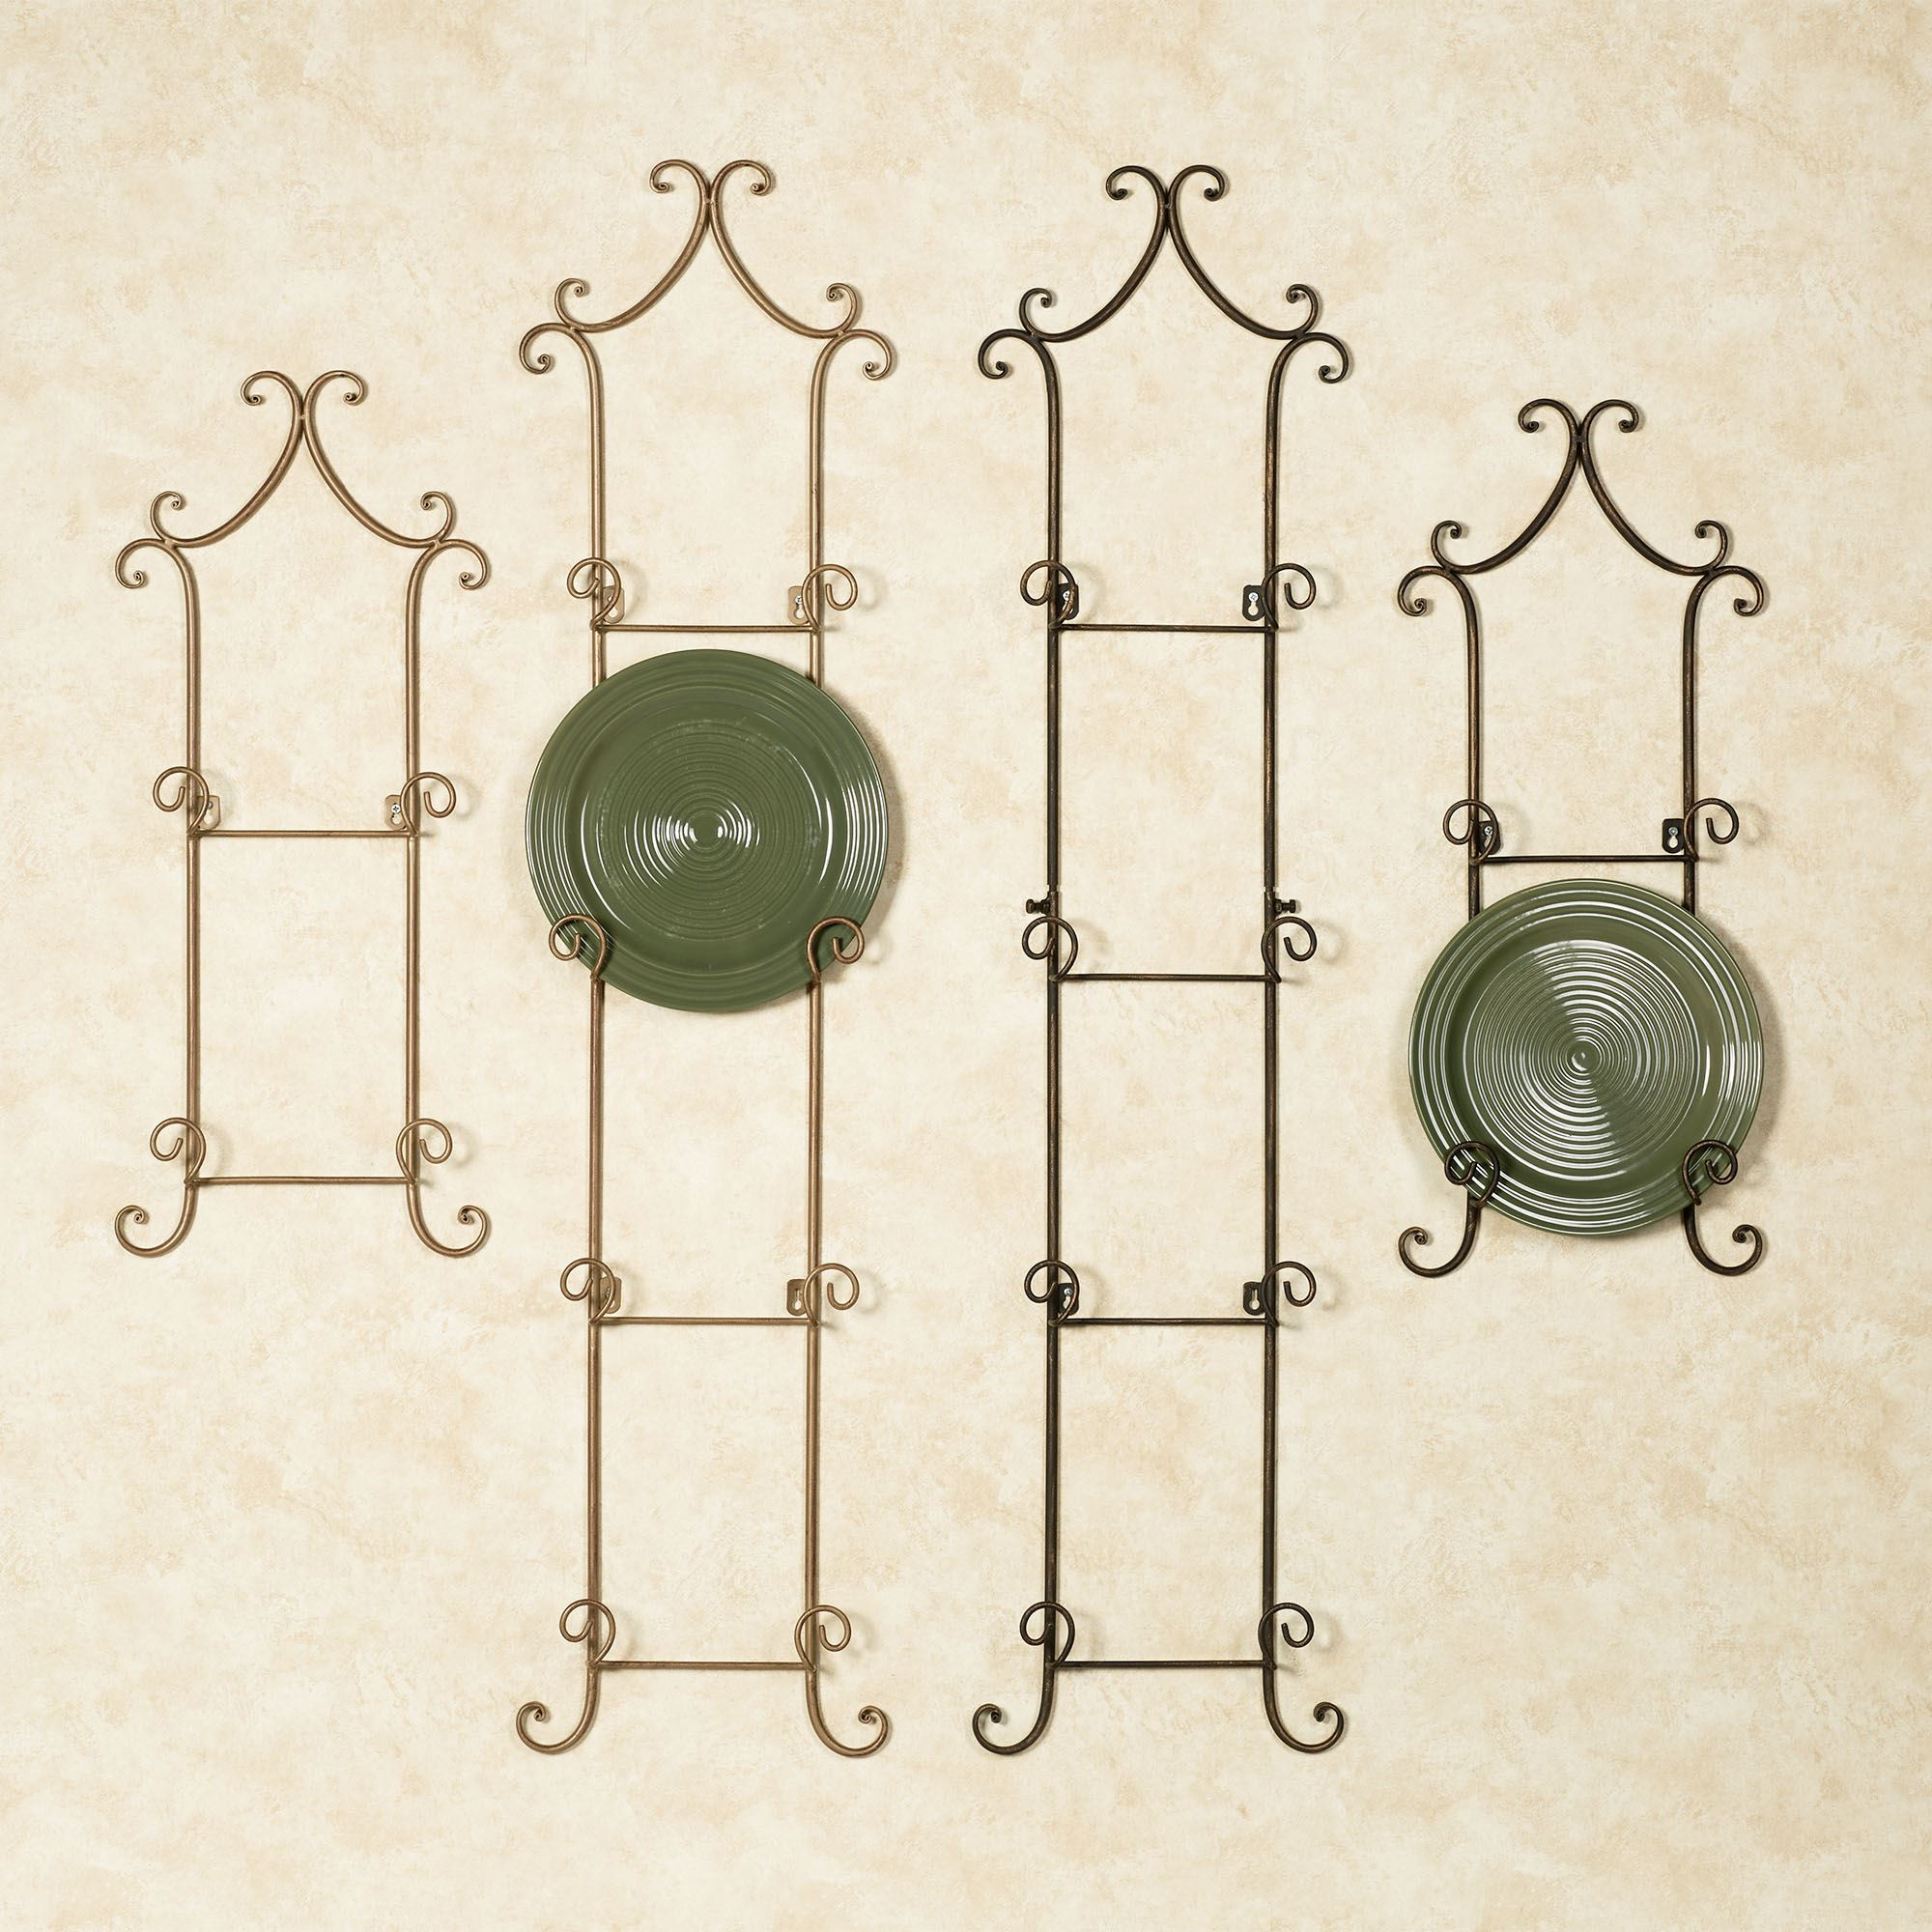 Regalla Vertical Plate Rack For 9 To 10 Diameter Plates